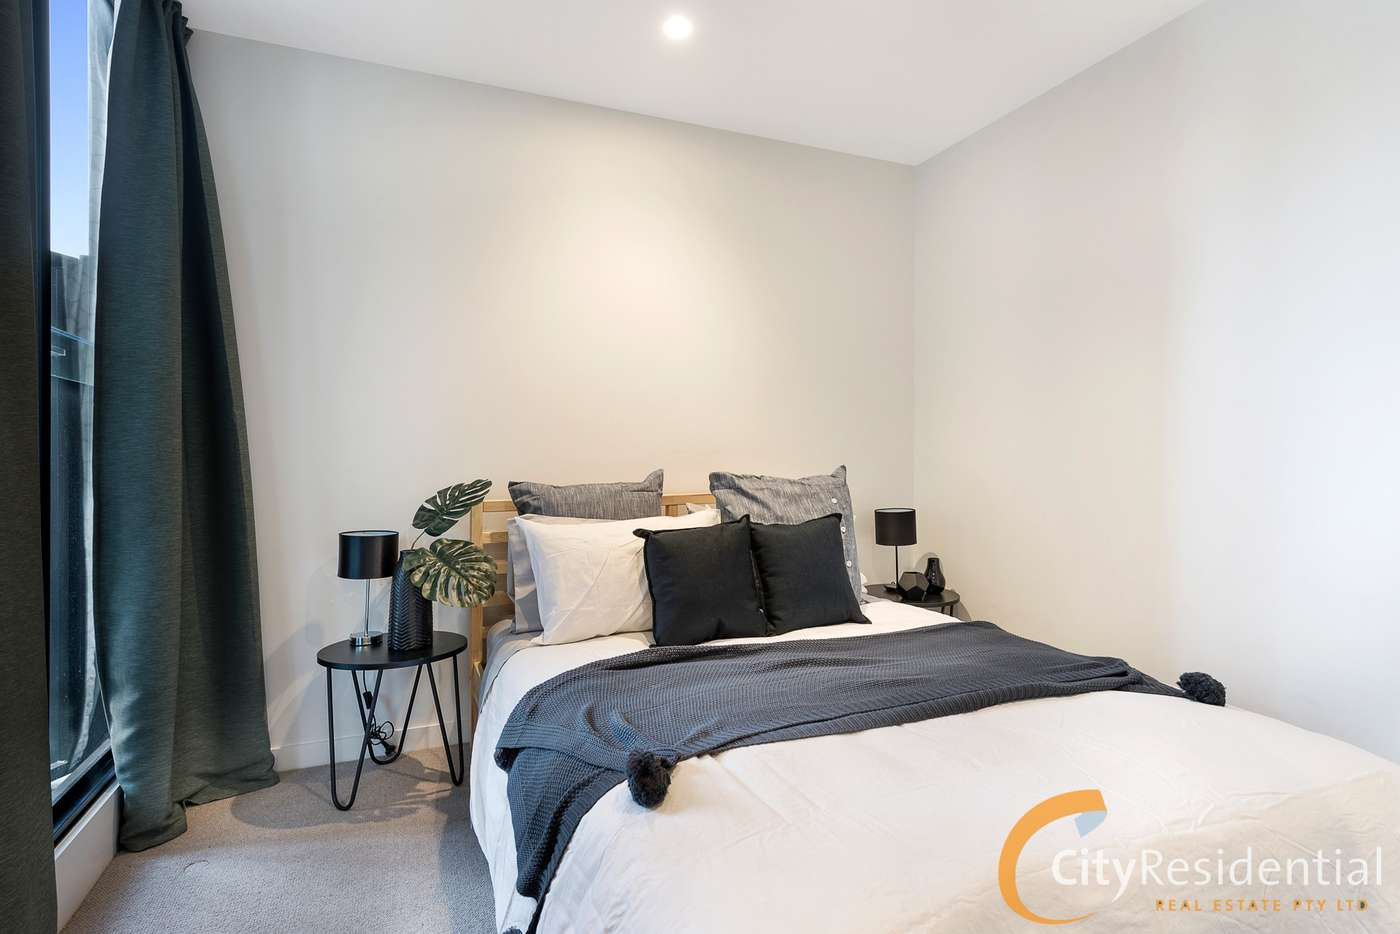 Sixth view of Homely apartment listing, 5/380 Queensberry Street, North Melbourne VIC 3051